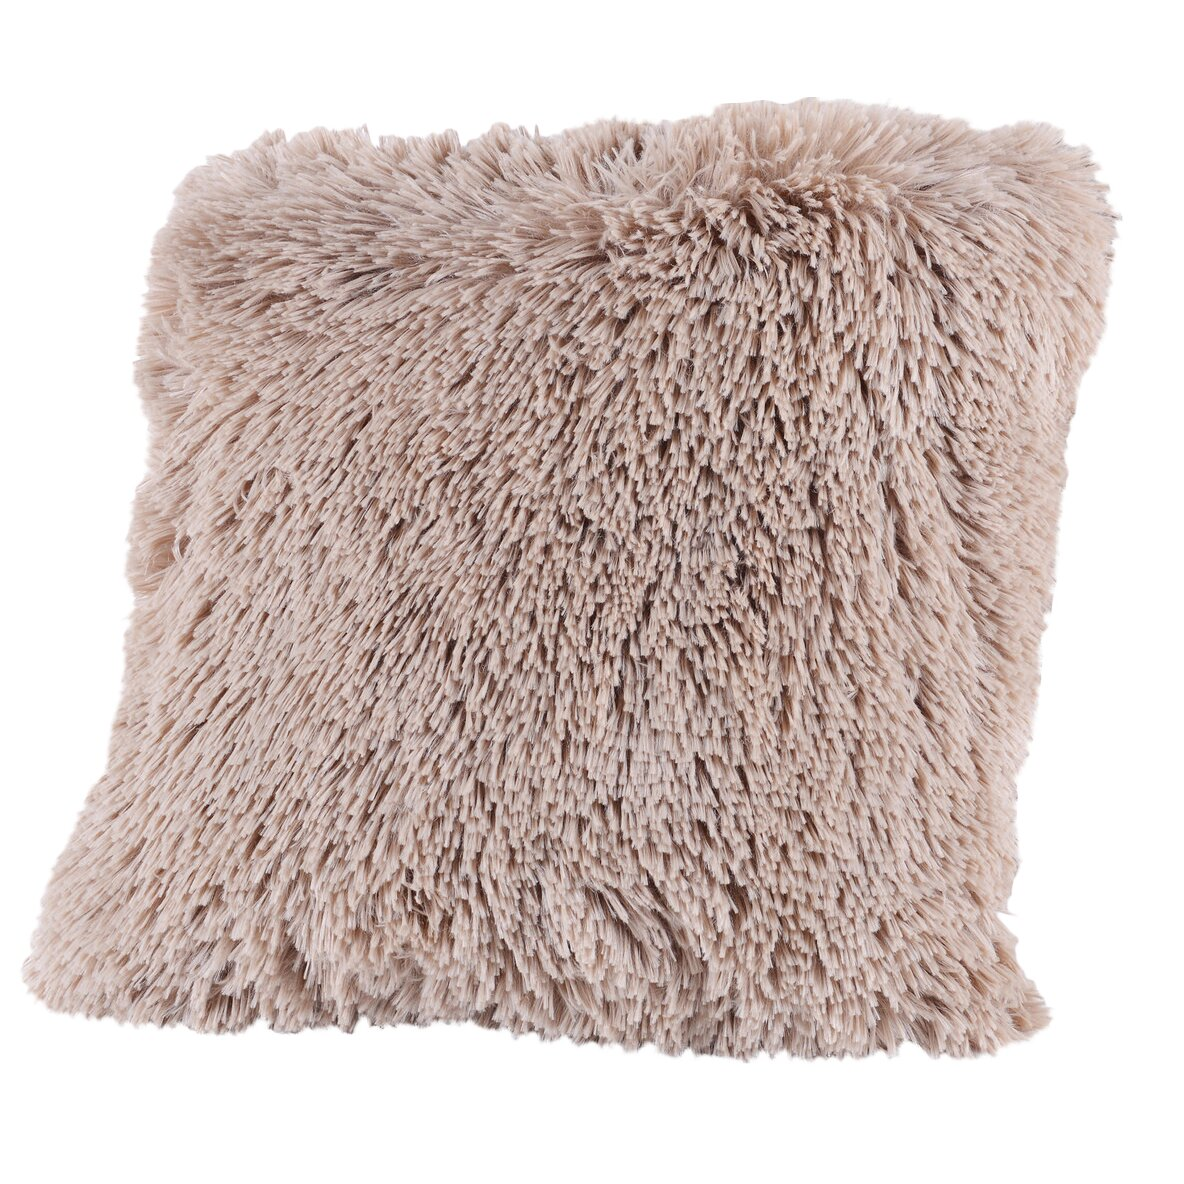 Mercer41 Carnot Very Soft And Comfy Plush Throw Pillow